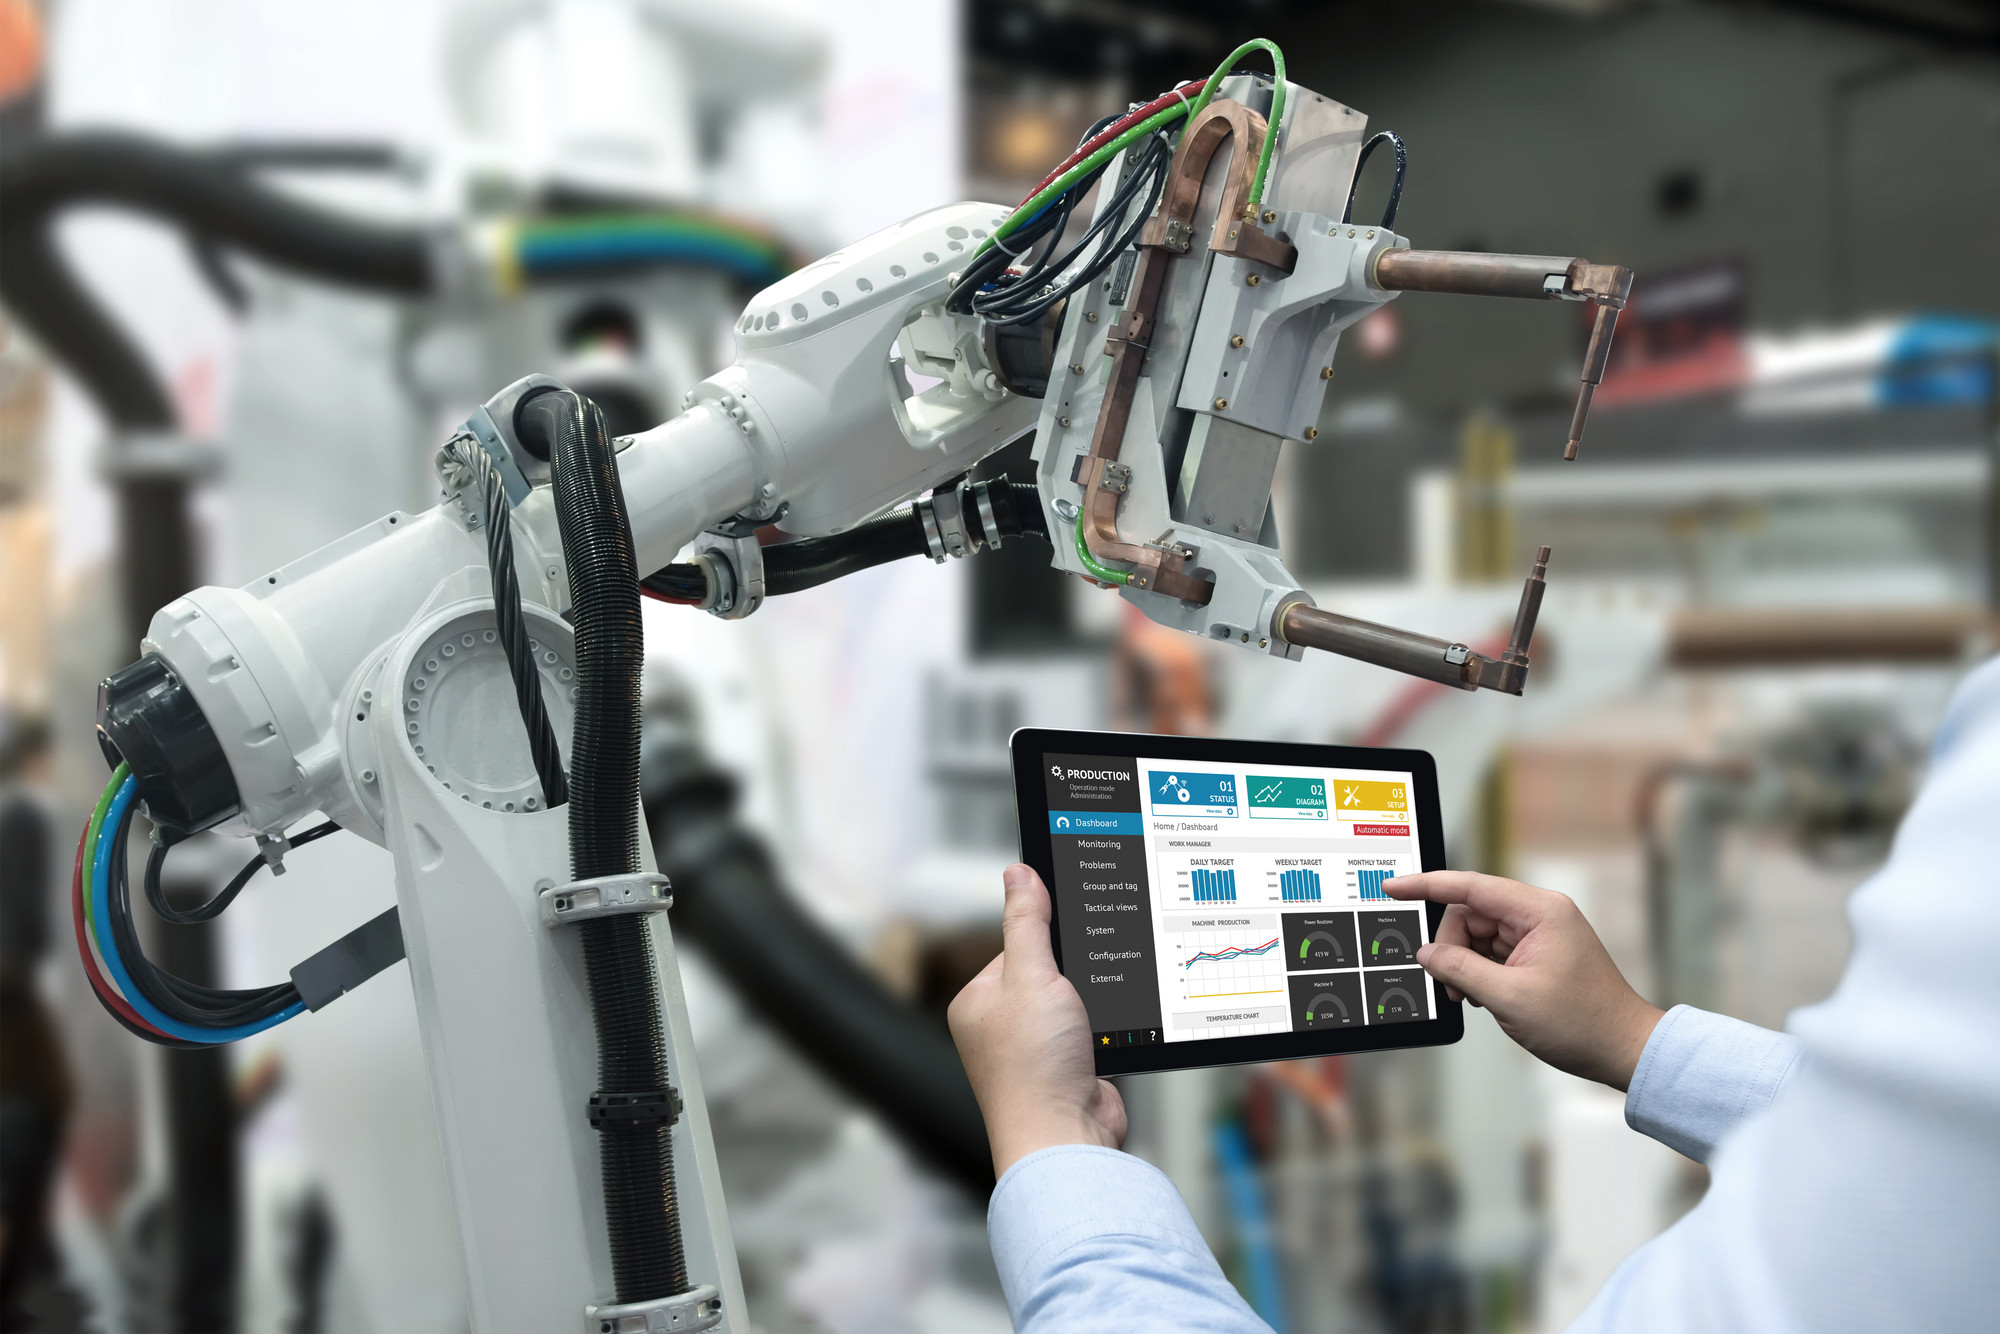 Main visual : Data precision gives smart manufacturers the edge